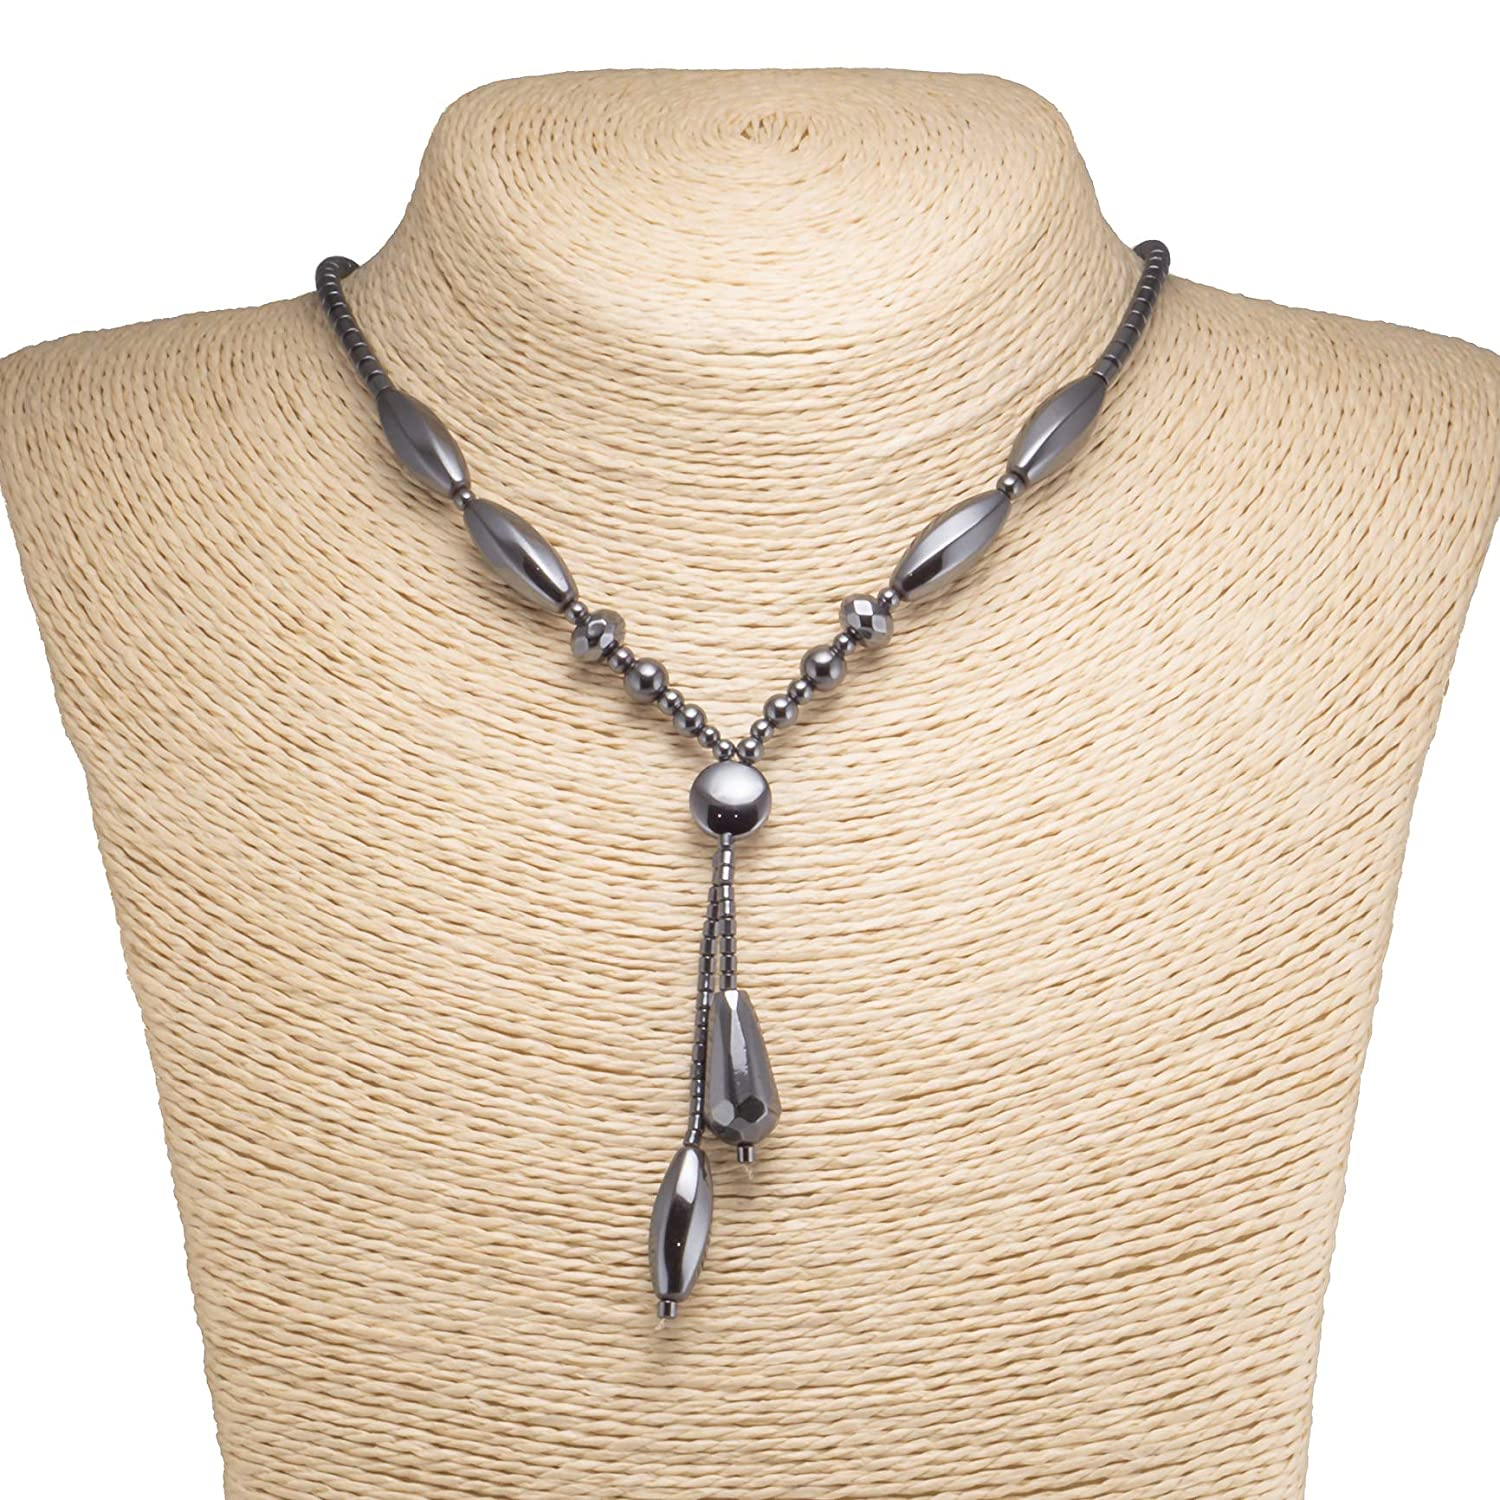 BlueRica Double Strand Drop Hematite Necklace with Designer Beads